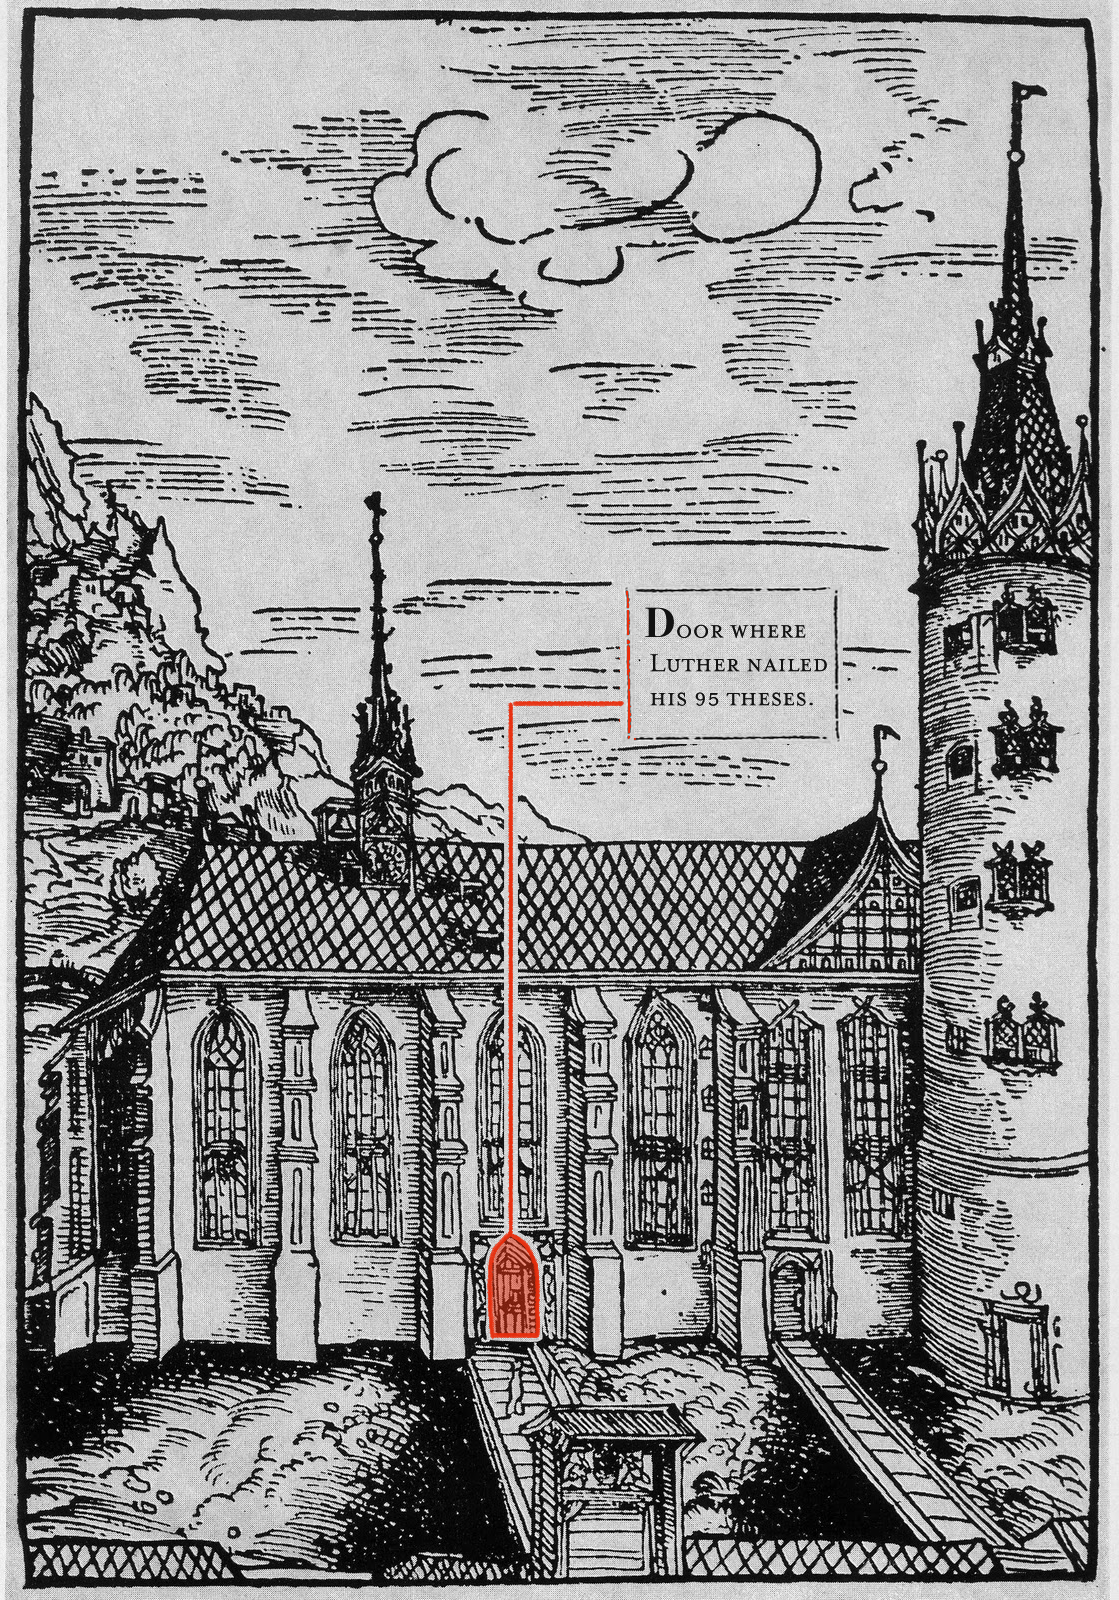 Here is what the church looks like today with the old doors superimposed over it & Looking at Wittenberg in the Time of Martin Luther